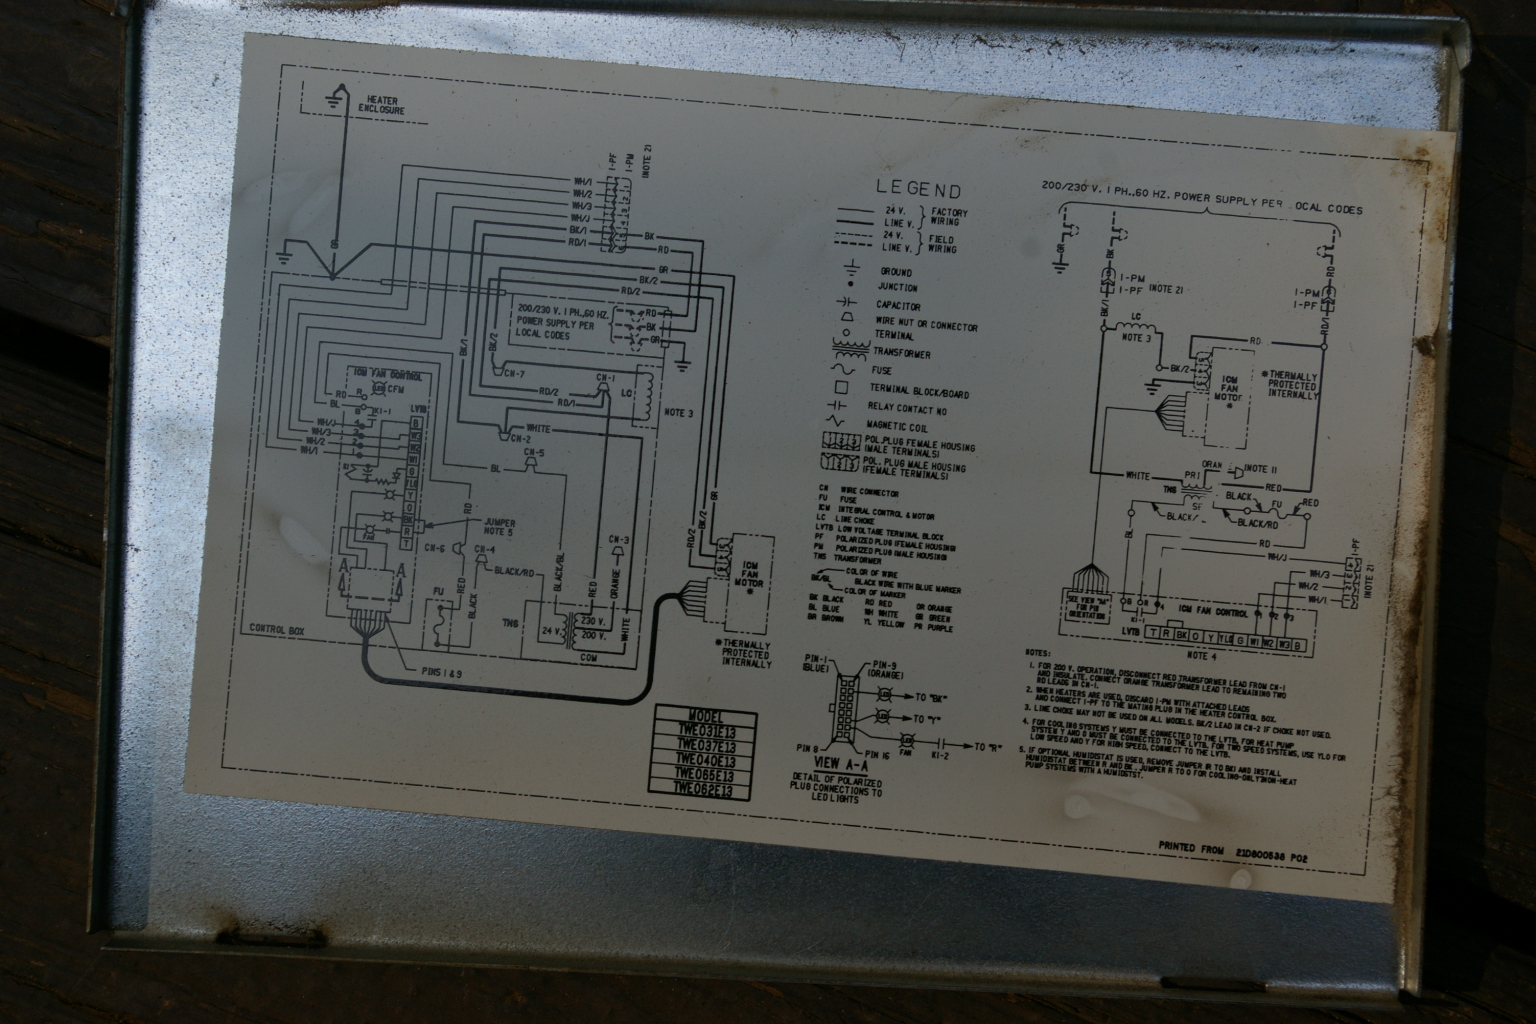 trane xl1200 heat pump wiring diagram whirlpool microwave door switch thermocore split system